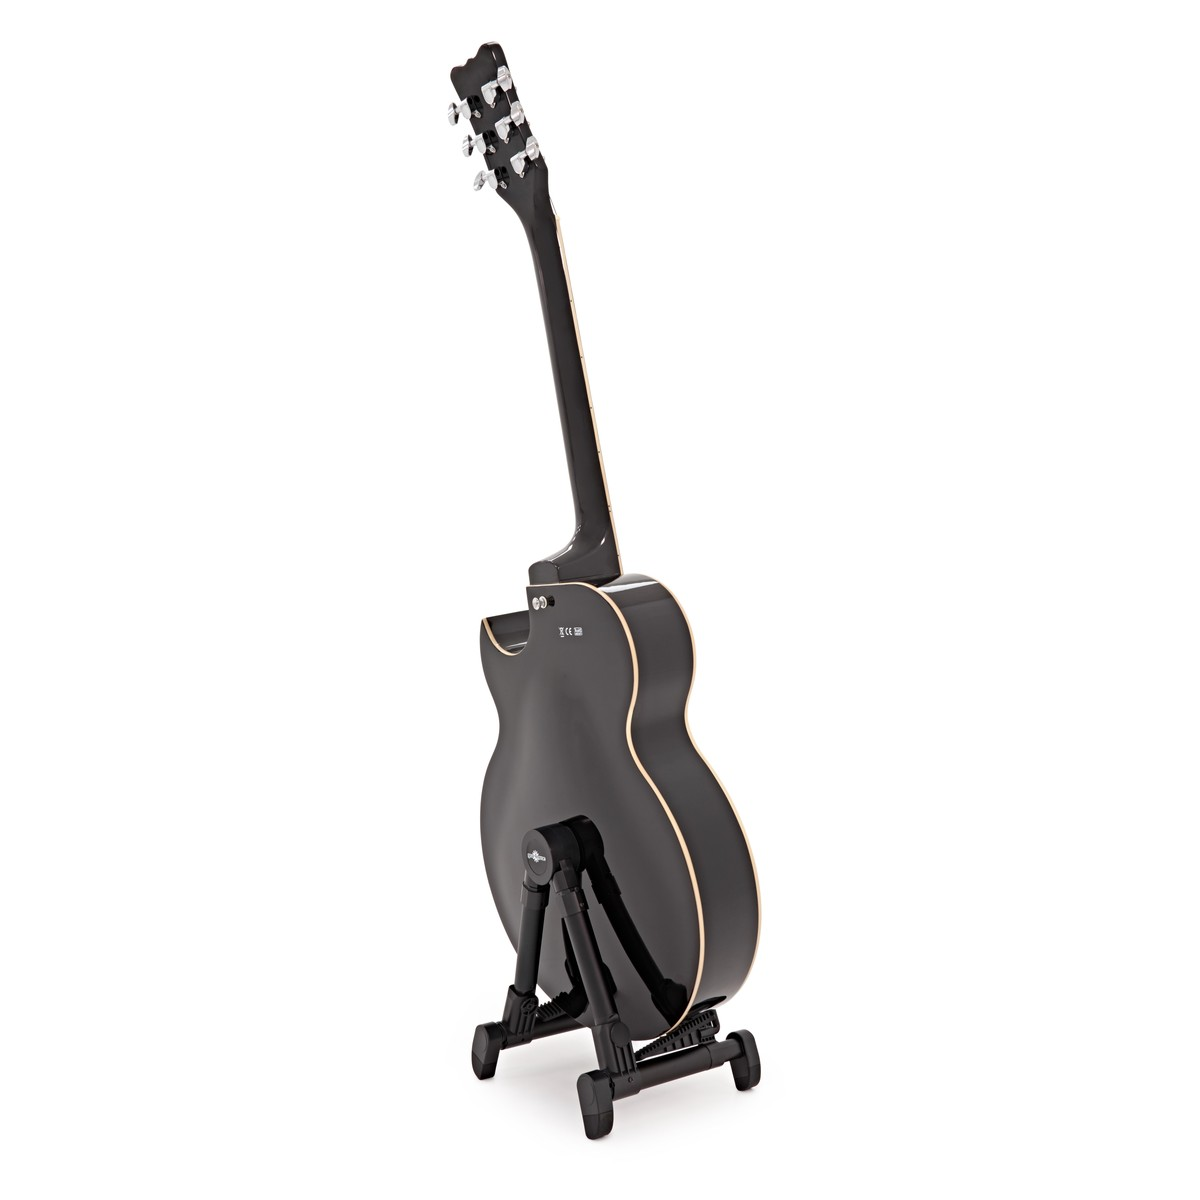 lightweight foldable guitar stand by gear4music at gear4music. Black Bedroom Furniture Sets. Home Design Ideas